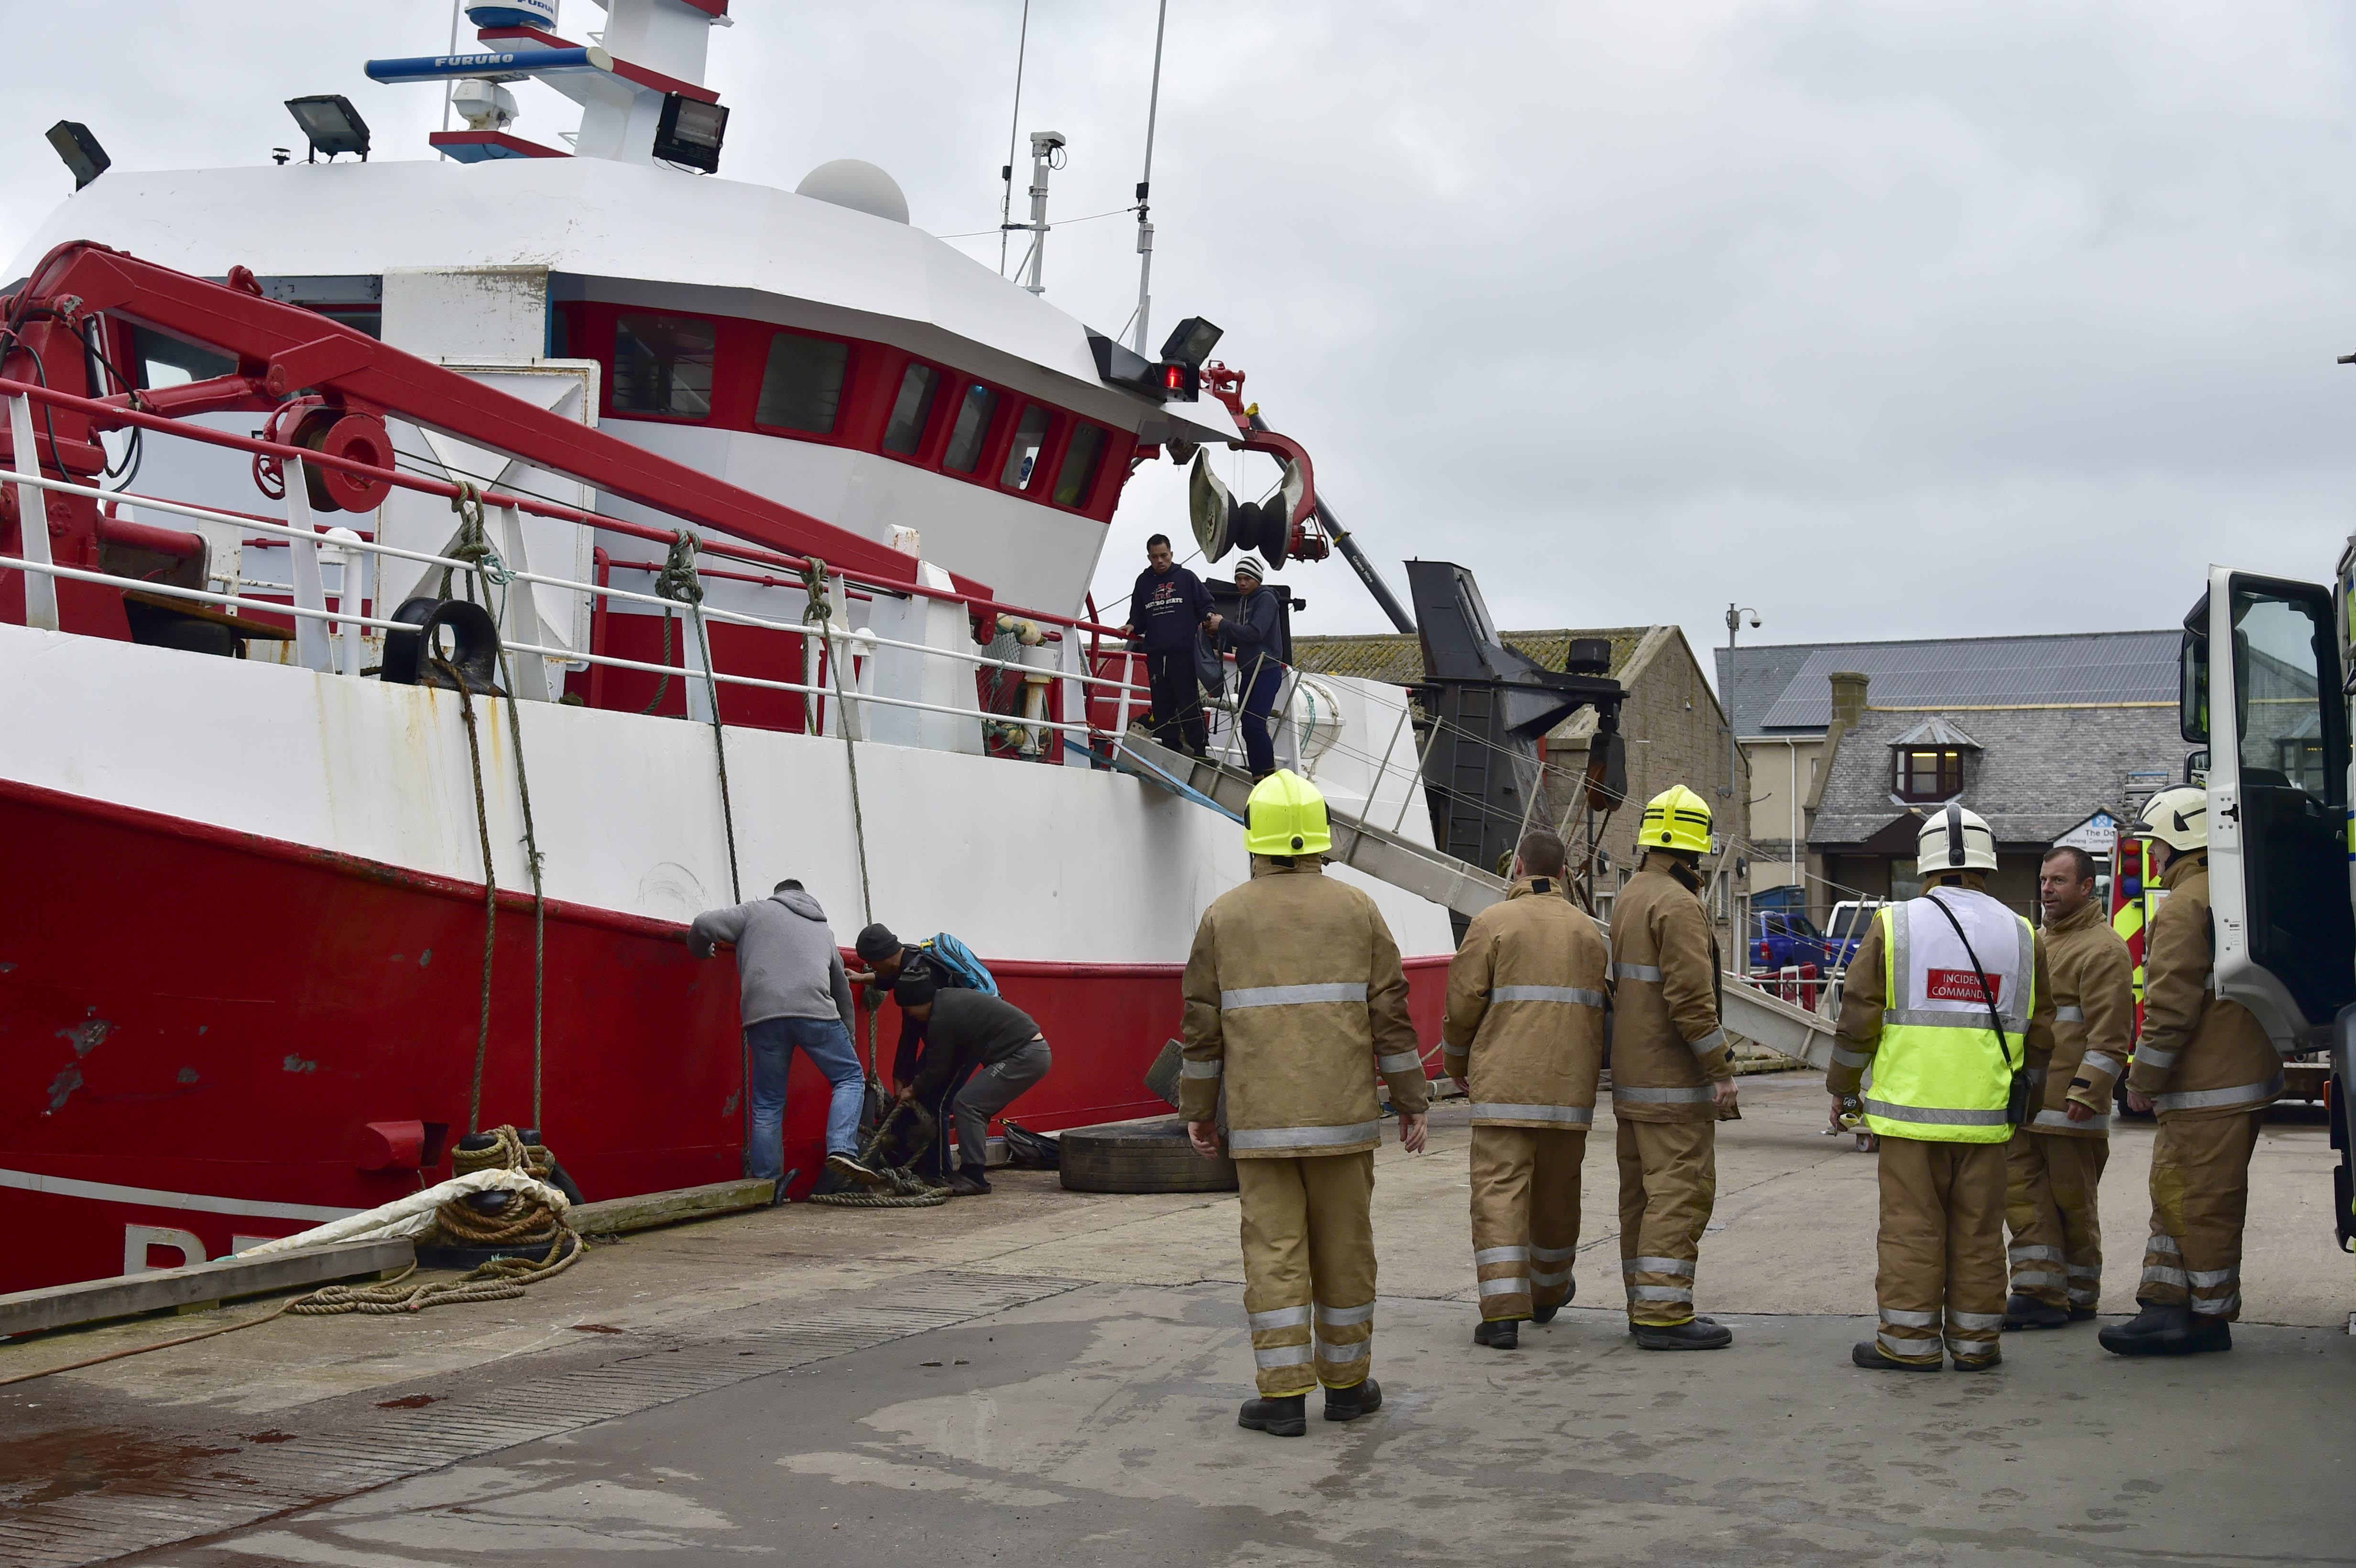 Three fire appliances and a height vehicle were called to the fire on board the boat at Macduff Harbour shortly after 7.30am